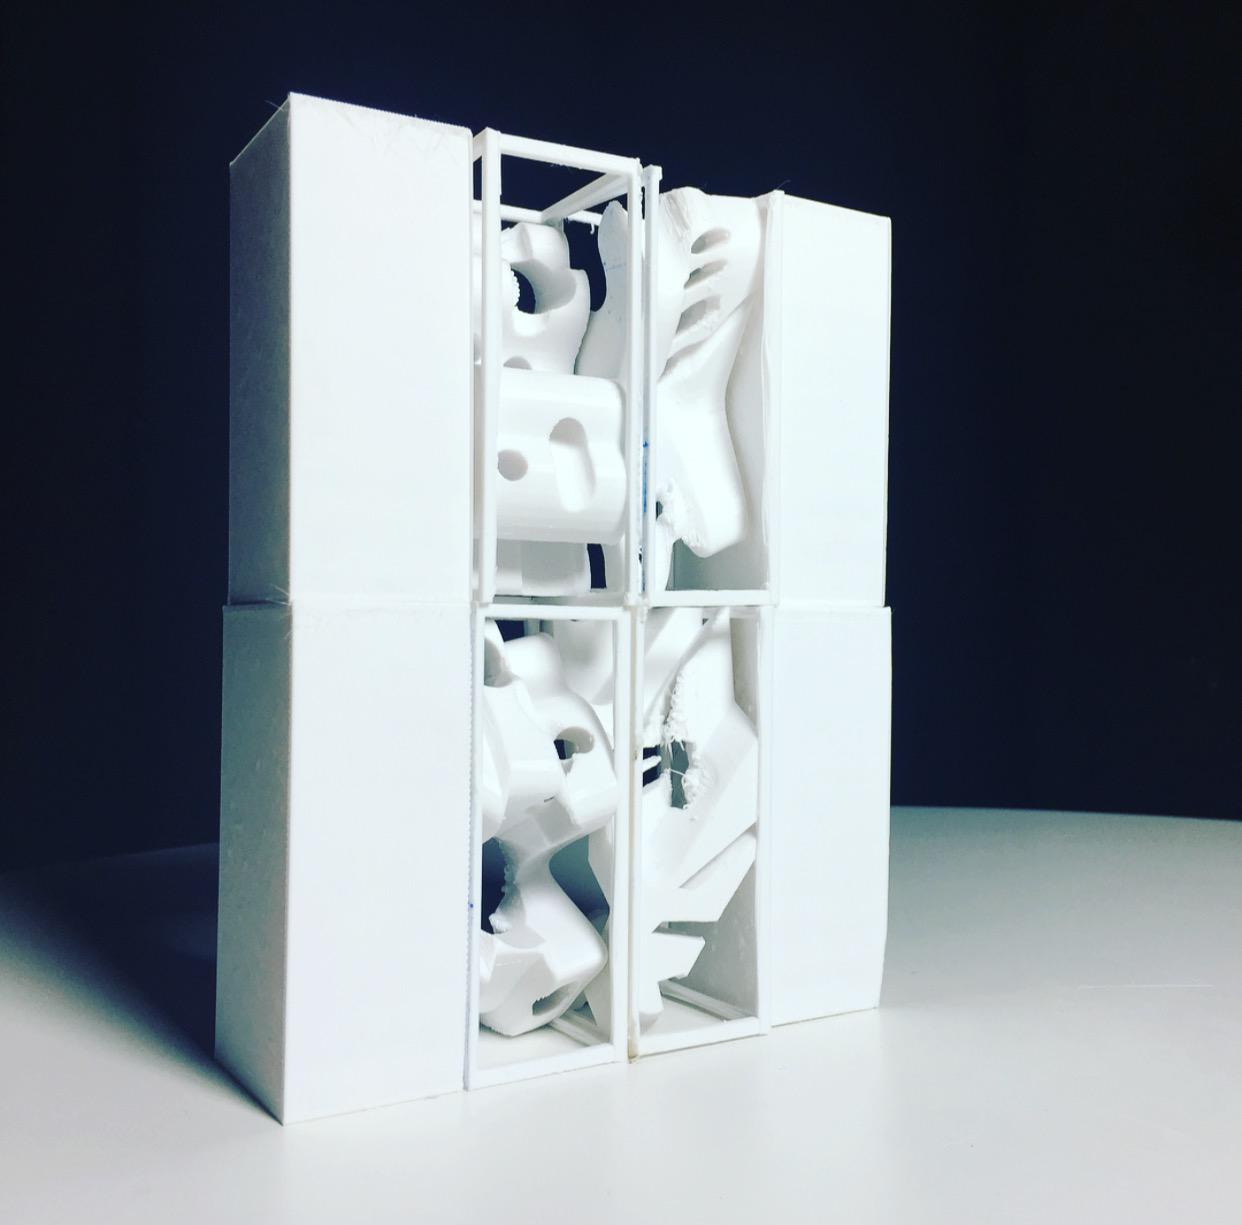 Sutton's Yale project translated people's thoughts and emotions into 3D printed objects.